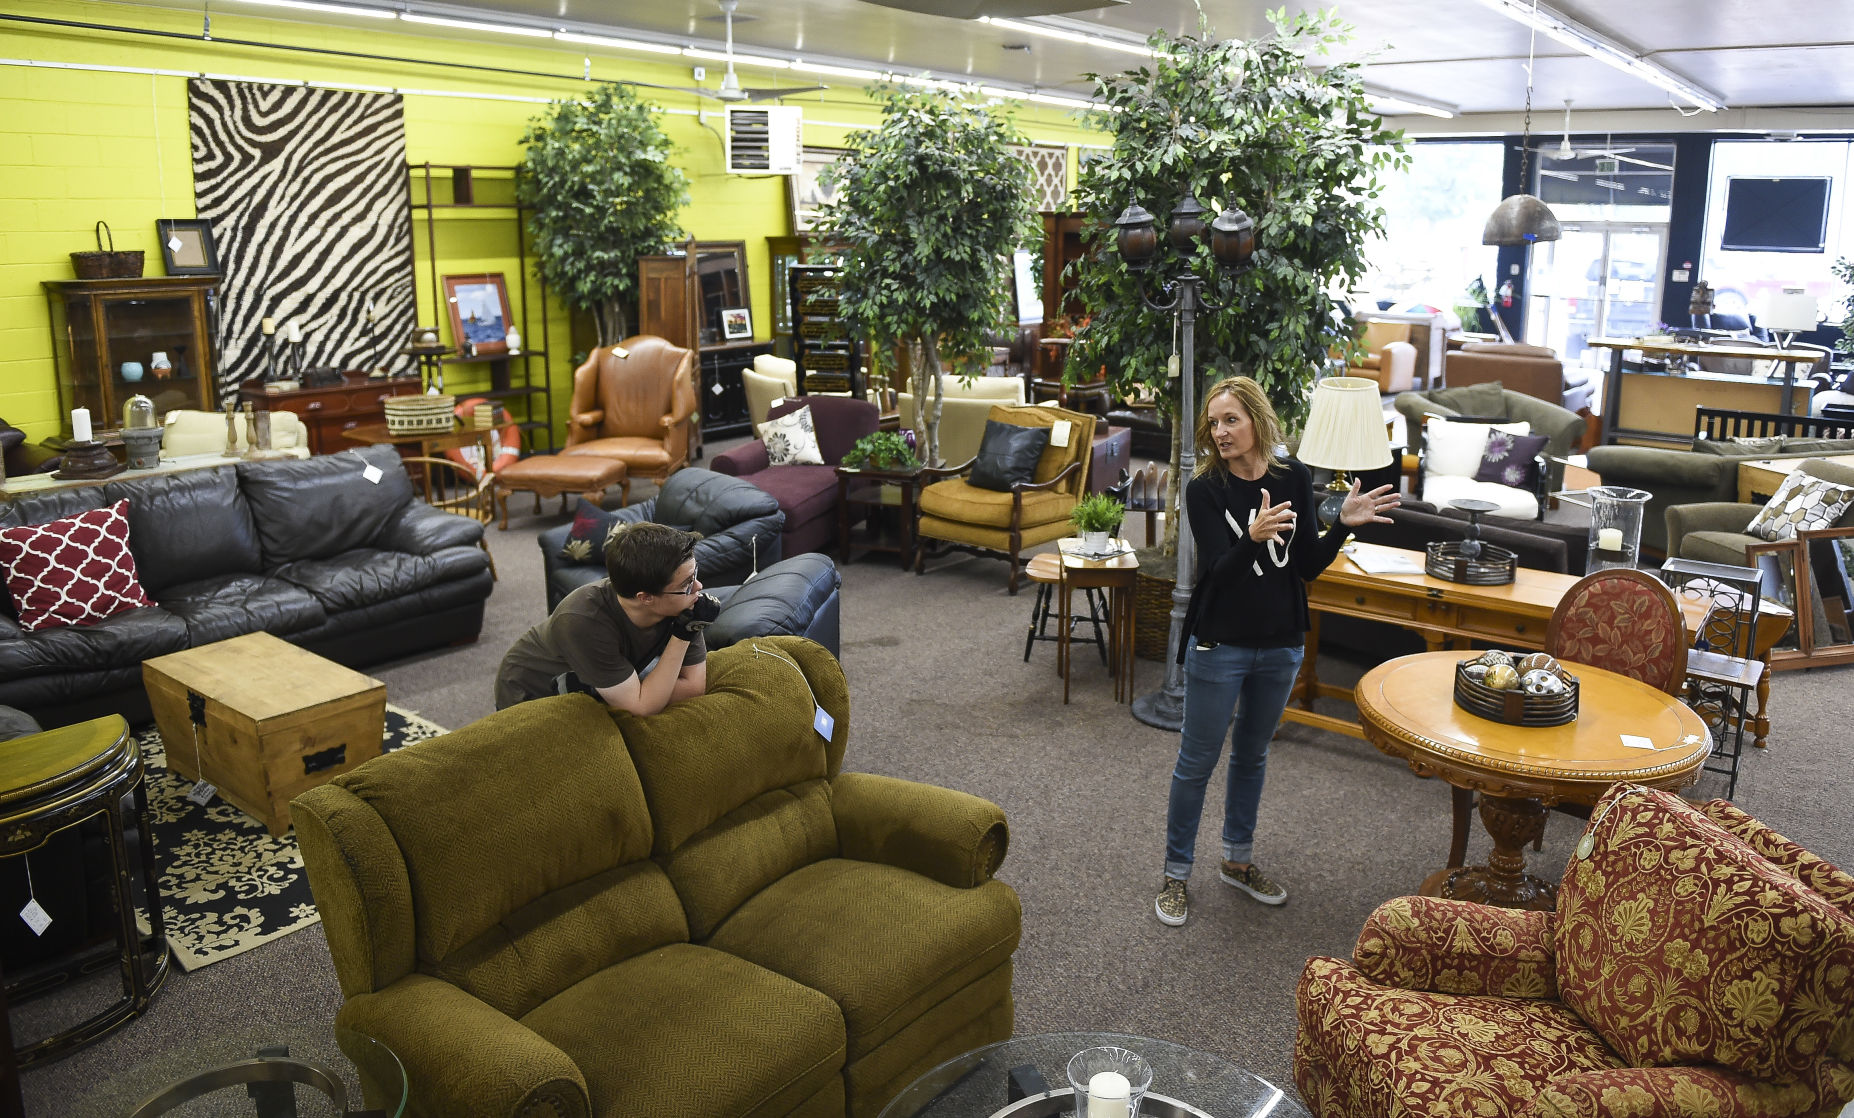 Colorado Springs Based Furniture Store Improves Sales Thanks To Staging |  Business | Gazette.com